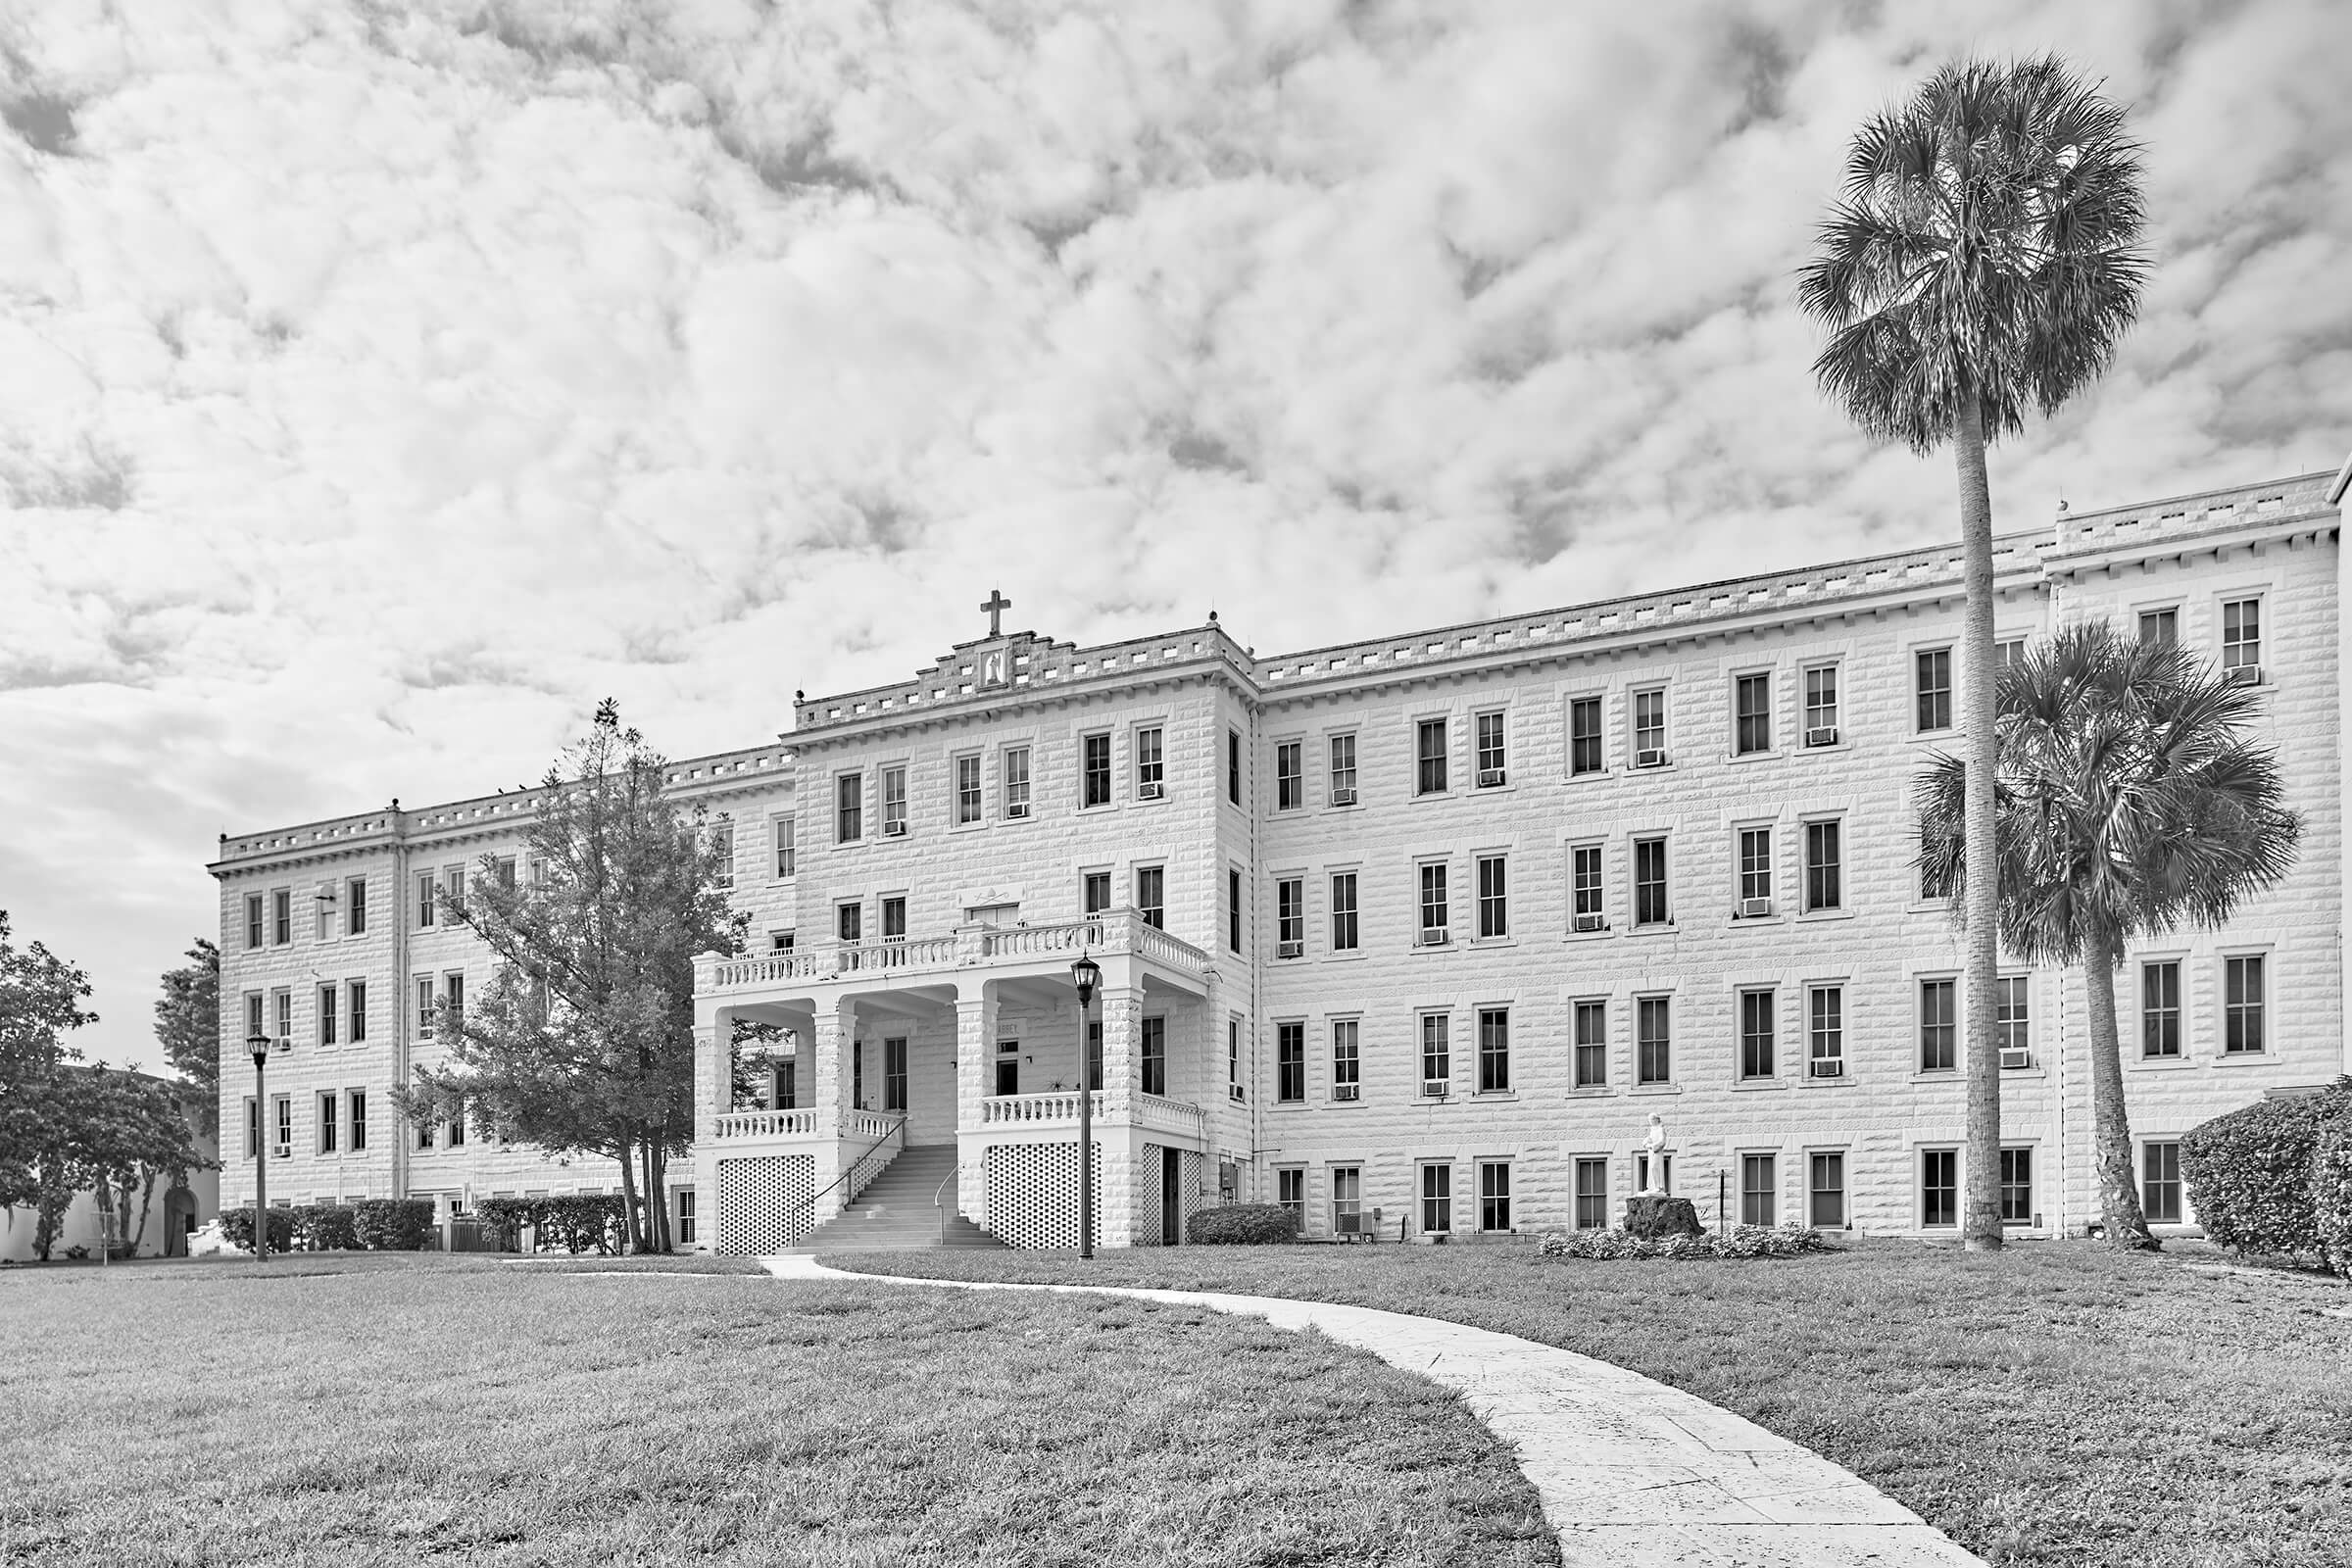 Find peace at Saint Leo Abbey